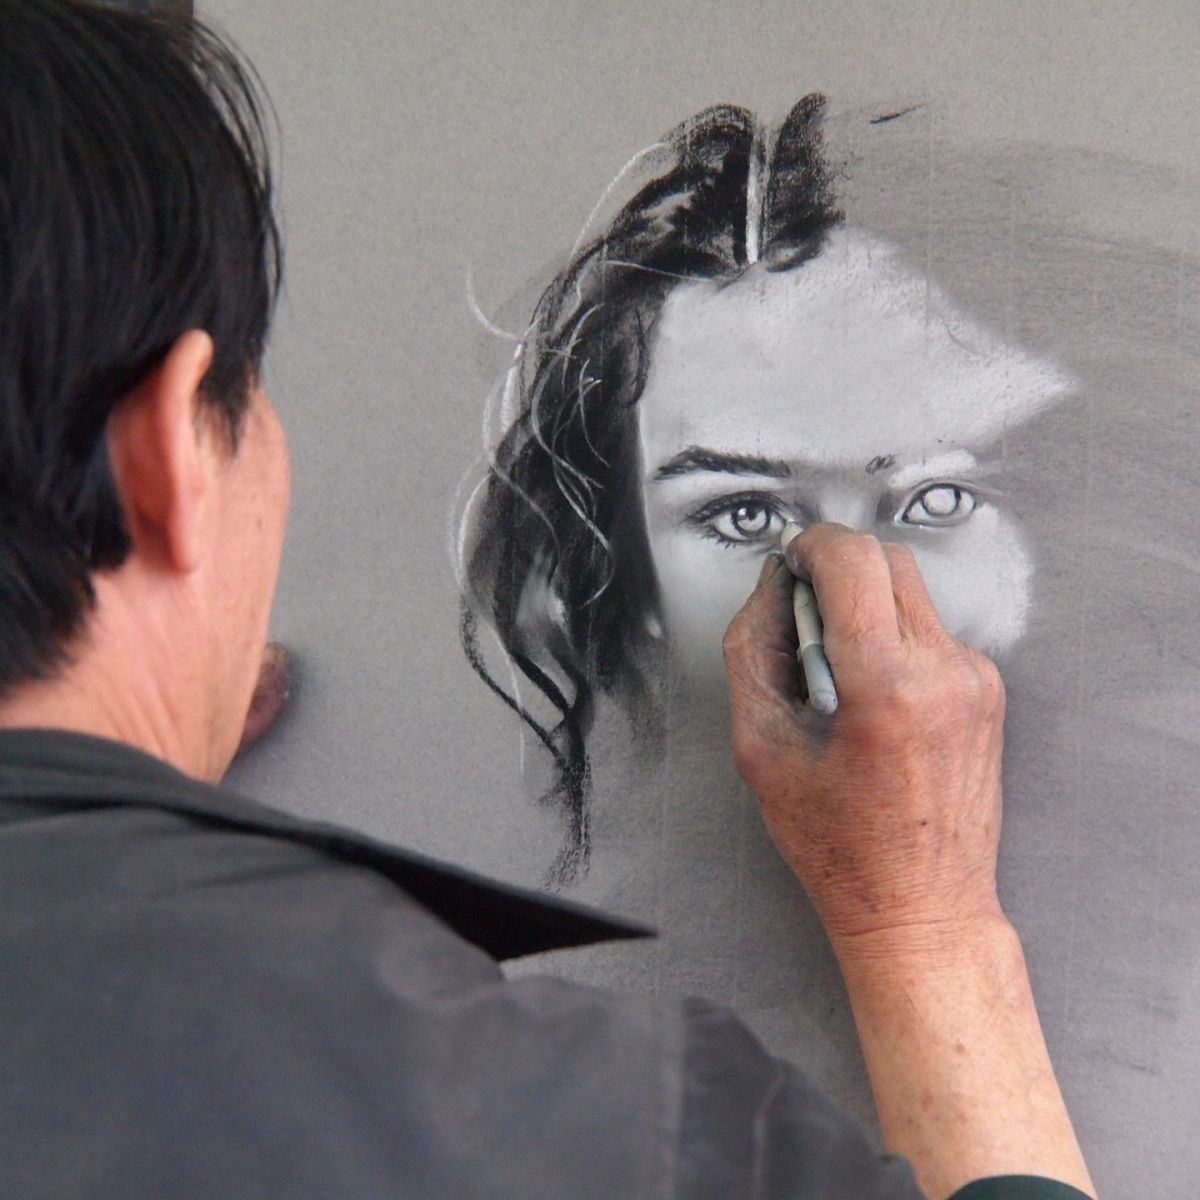 Artist draws sketch of woman on wall